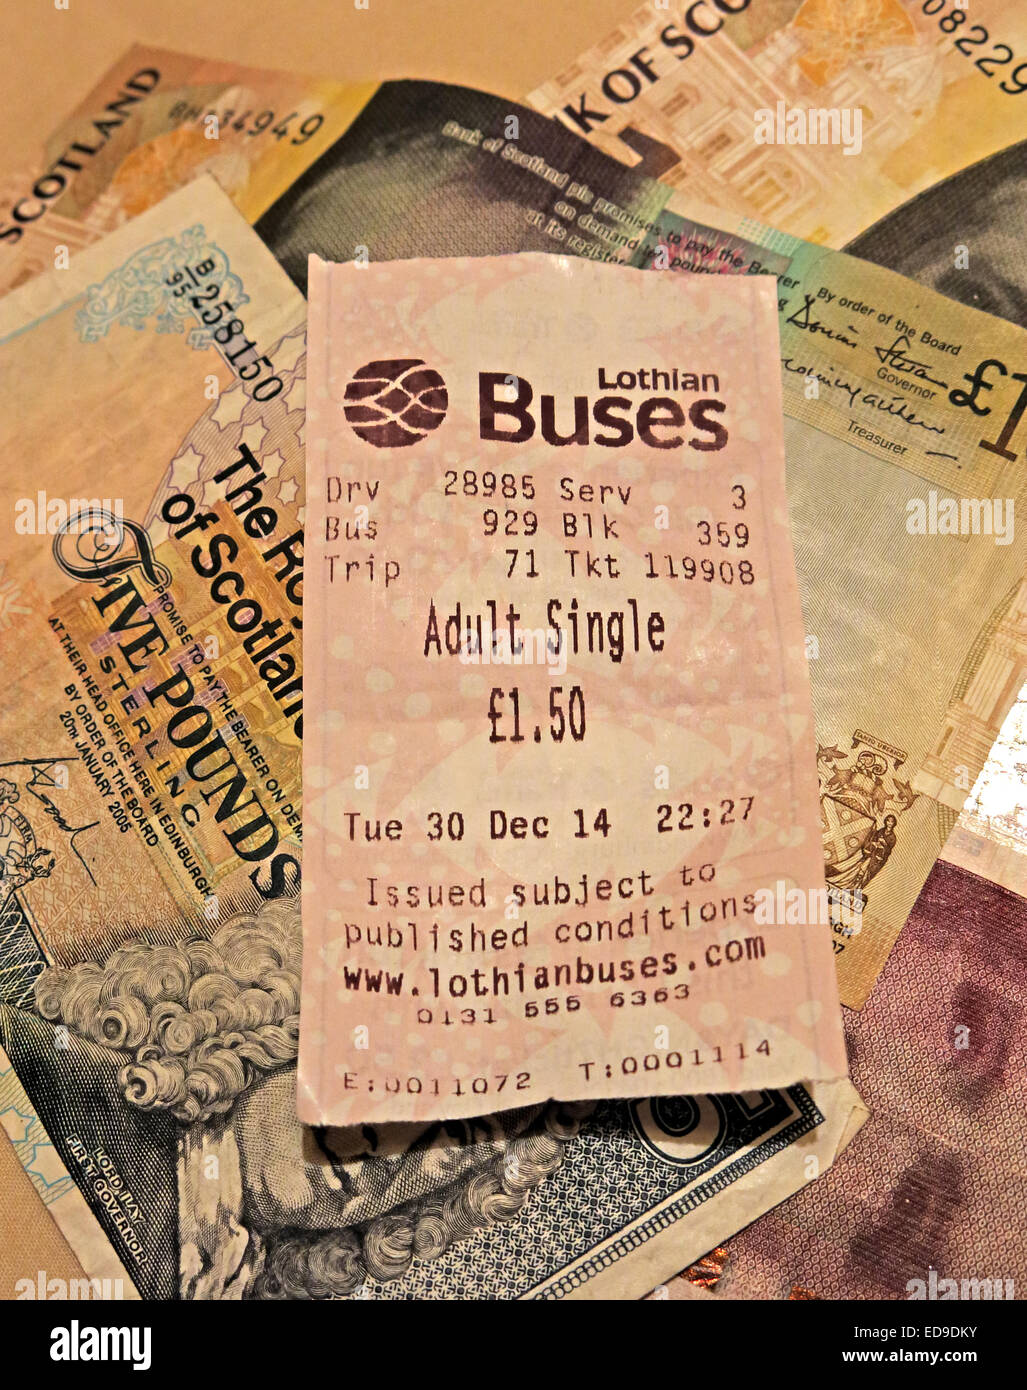 Lothian Buses bus Ticket and Scots banknotes from Edinburgh, Scotland, UK portrait format - Stock Image